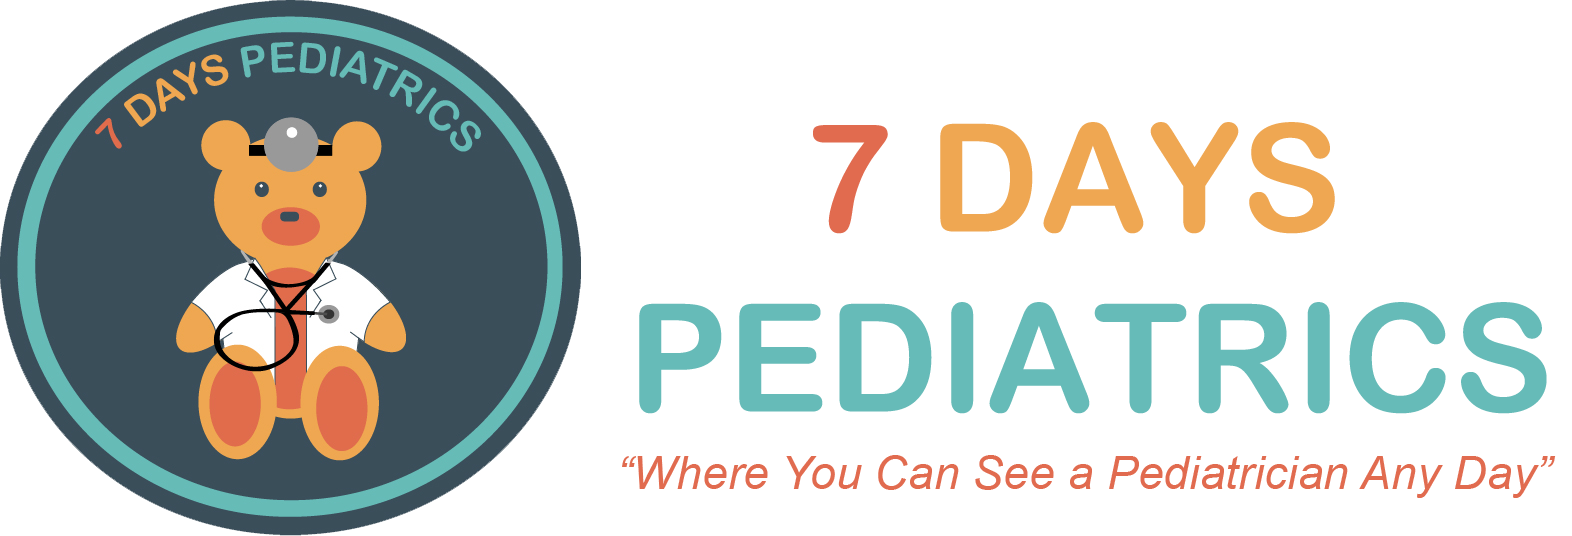 7 Days Pediatrics Logo